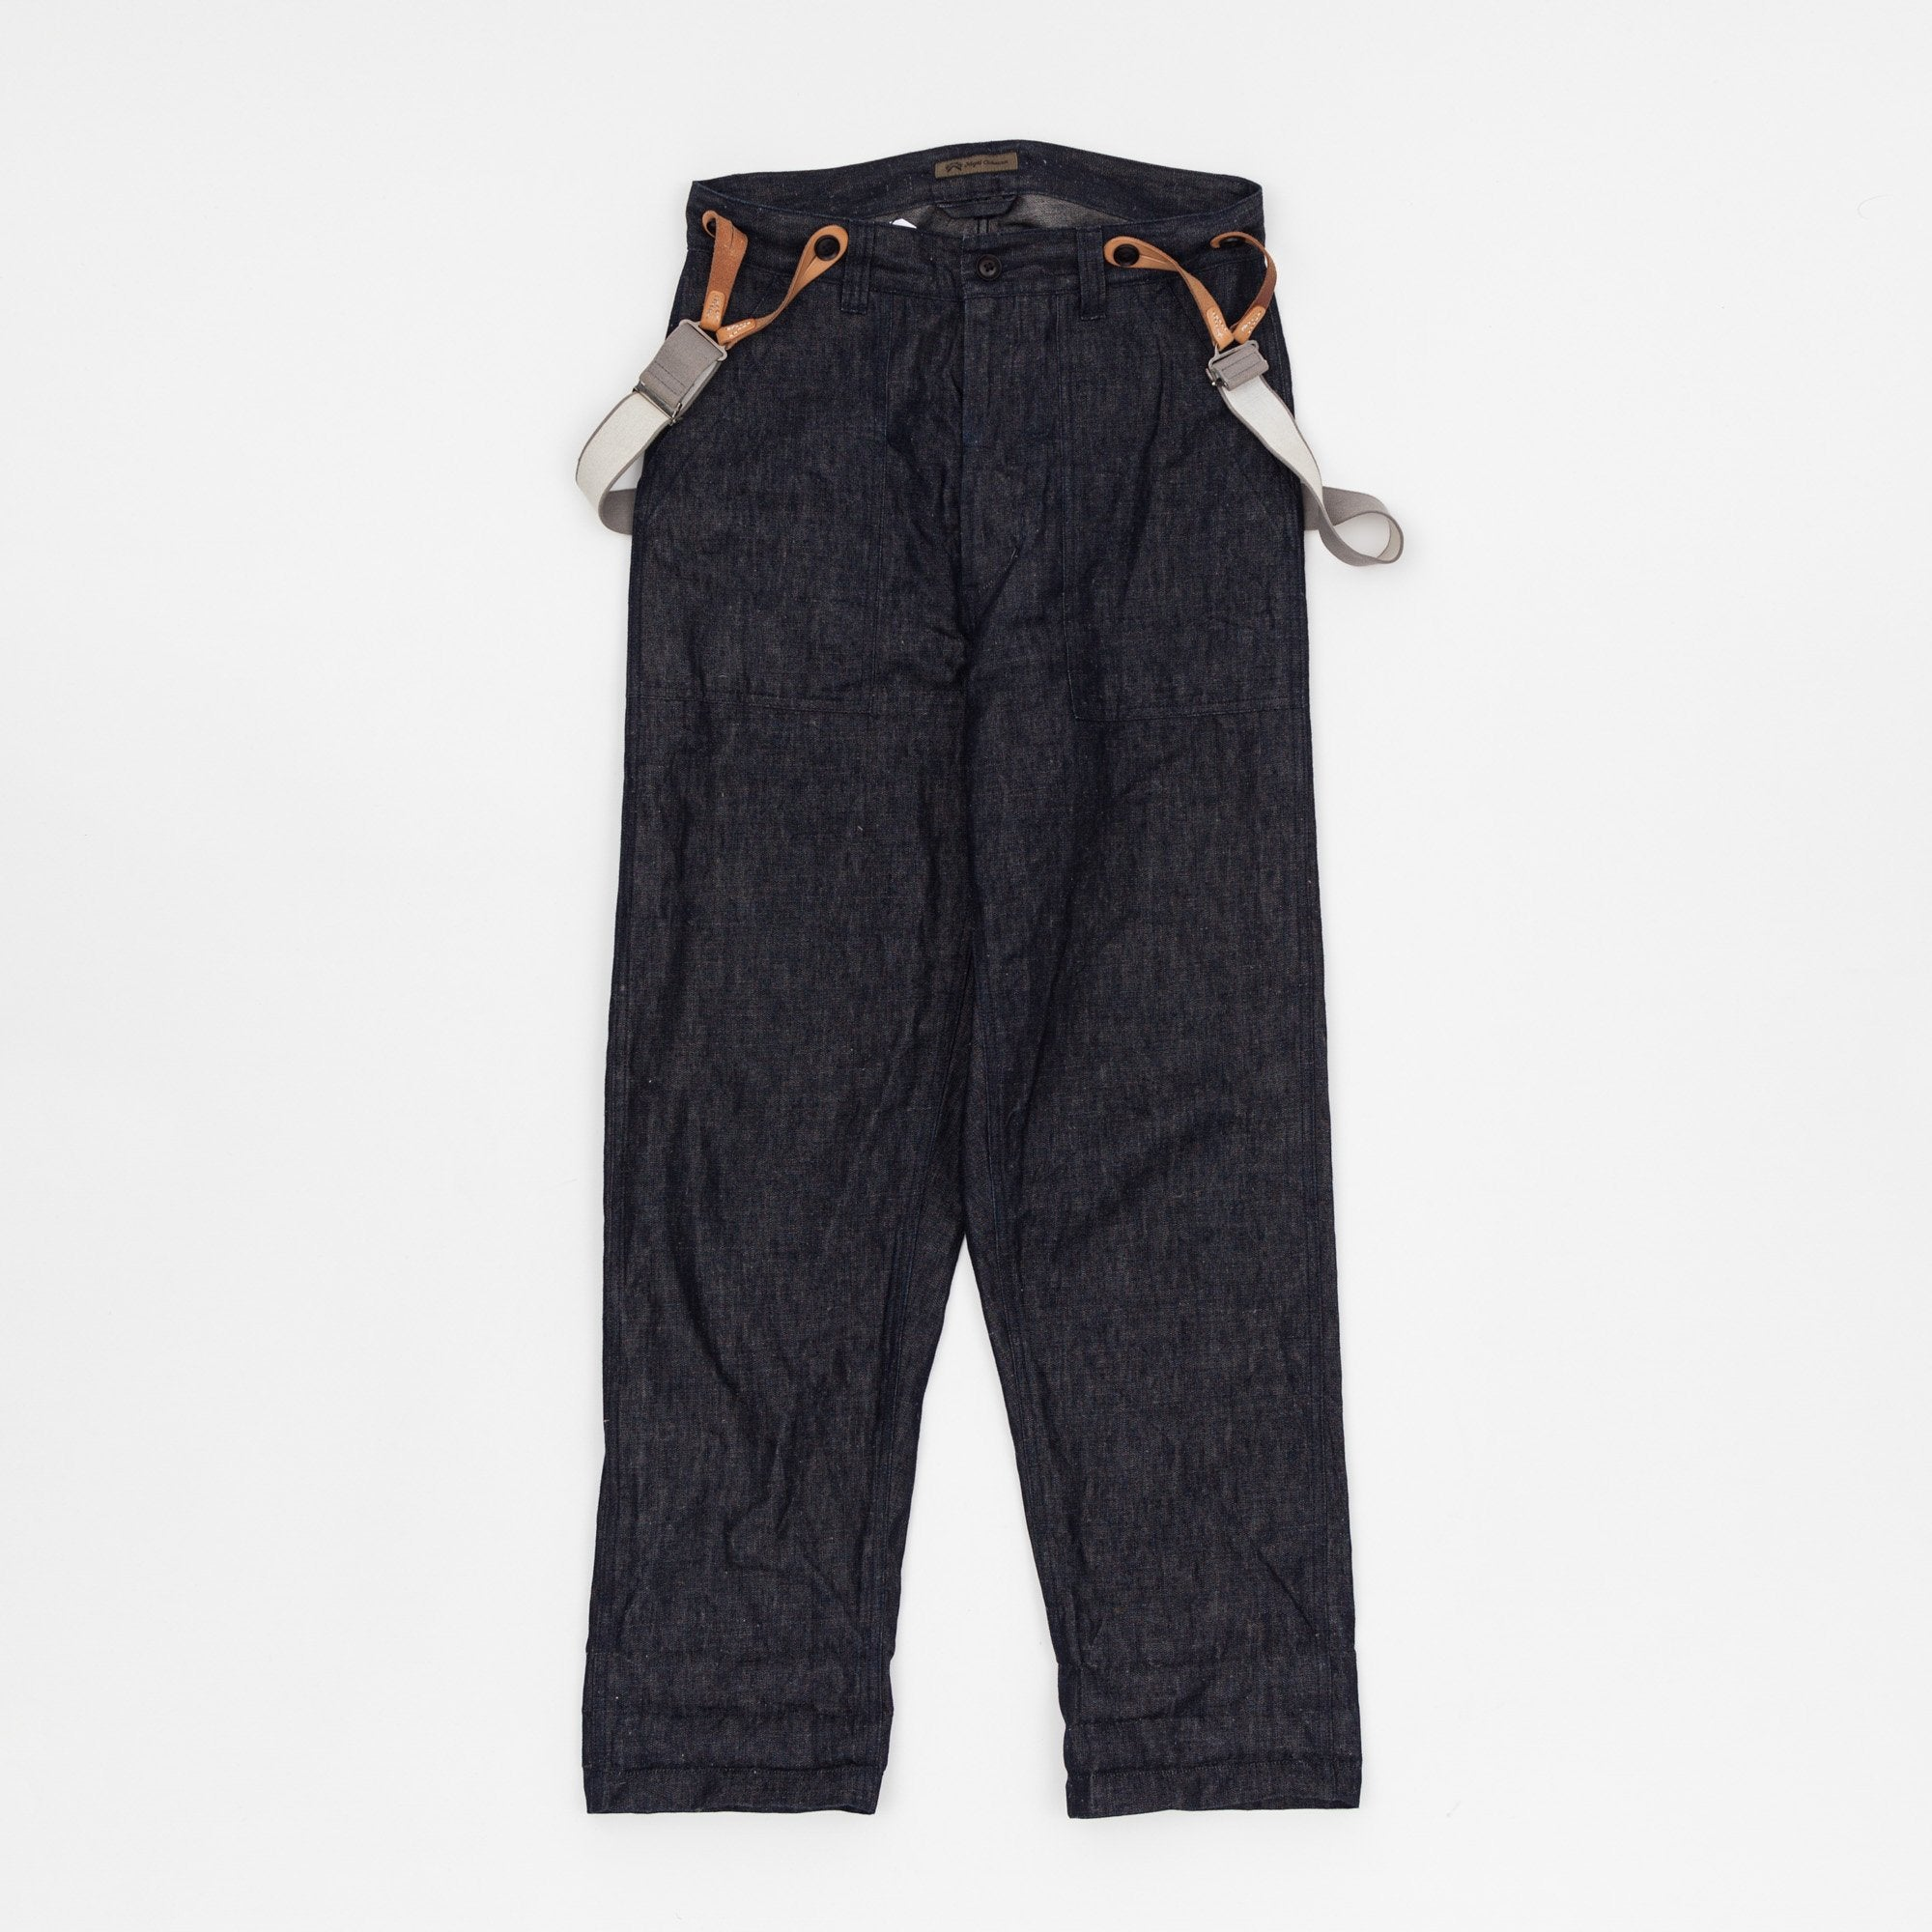 Nigel Cabourn Mainline Trousers with Braces